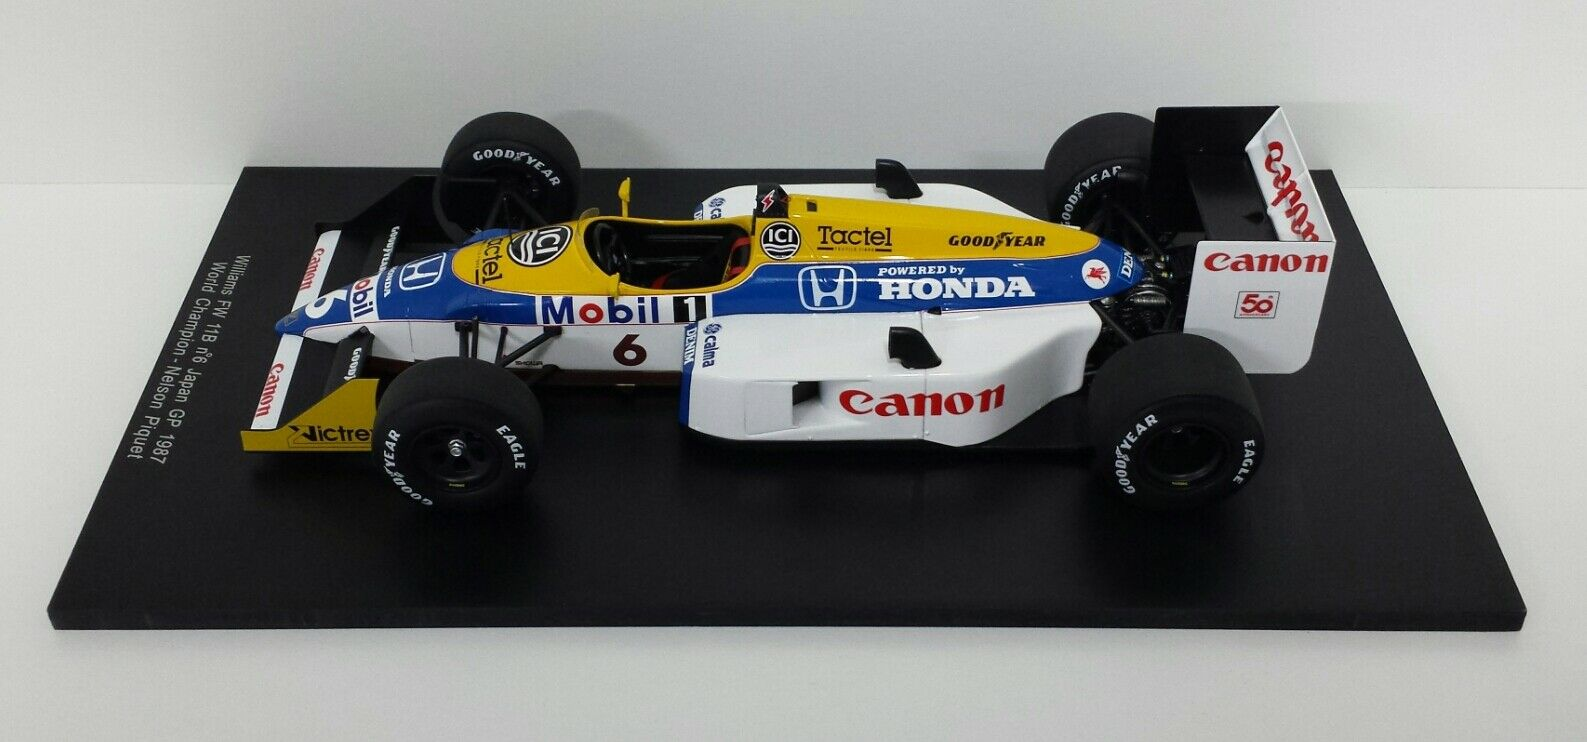 SPARK 1/18 MODELLINO F1 WILLIAMS FW11B NELSON PIQUET WORLD CHAMPION 1987 18S118